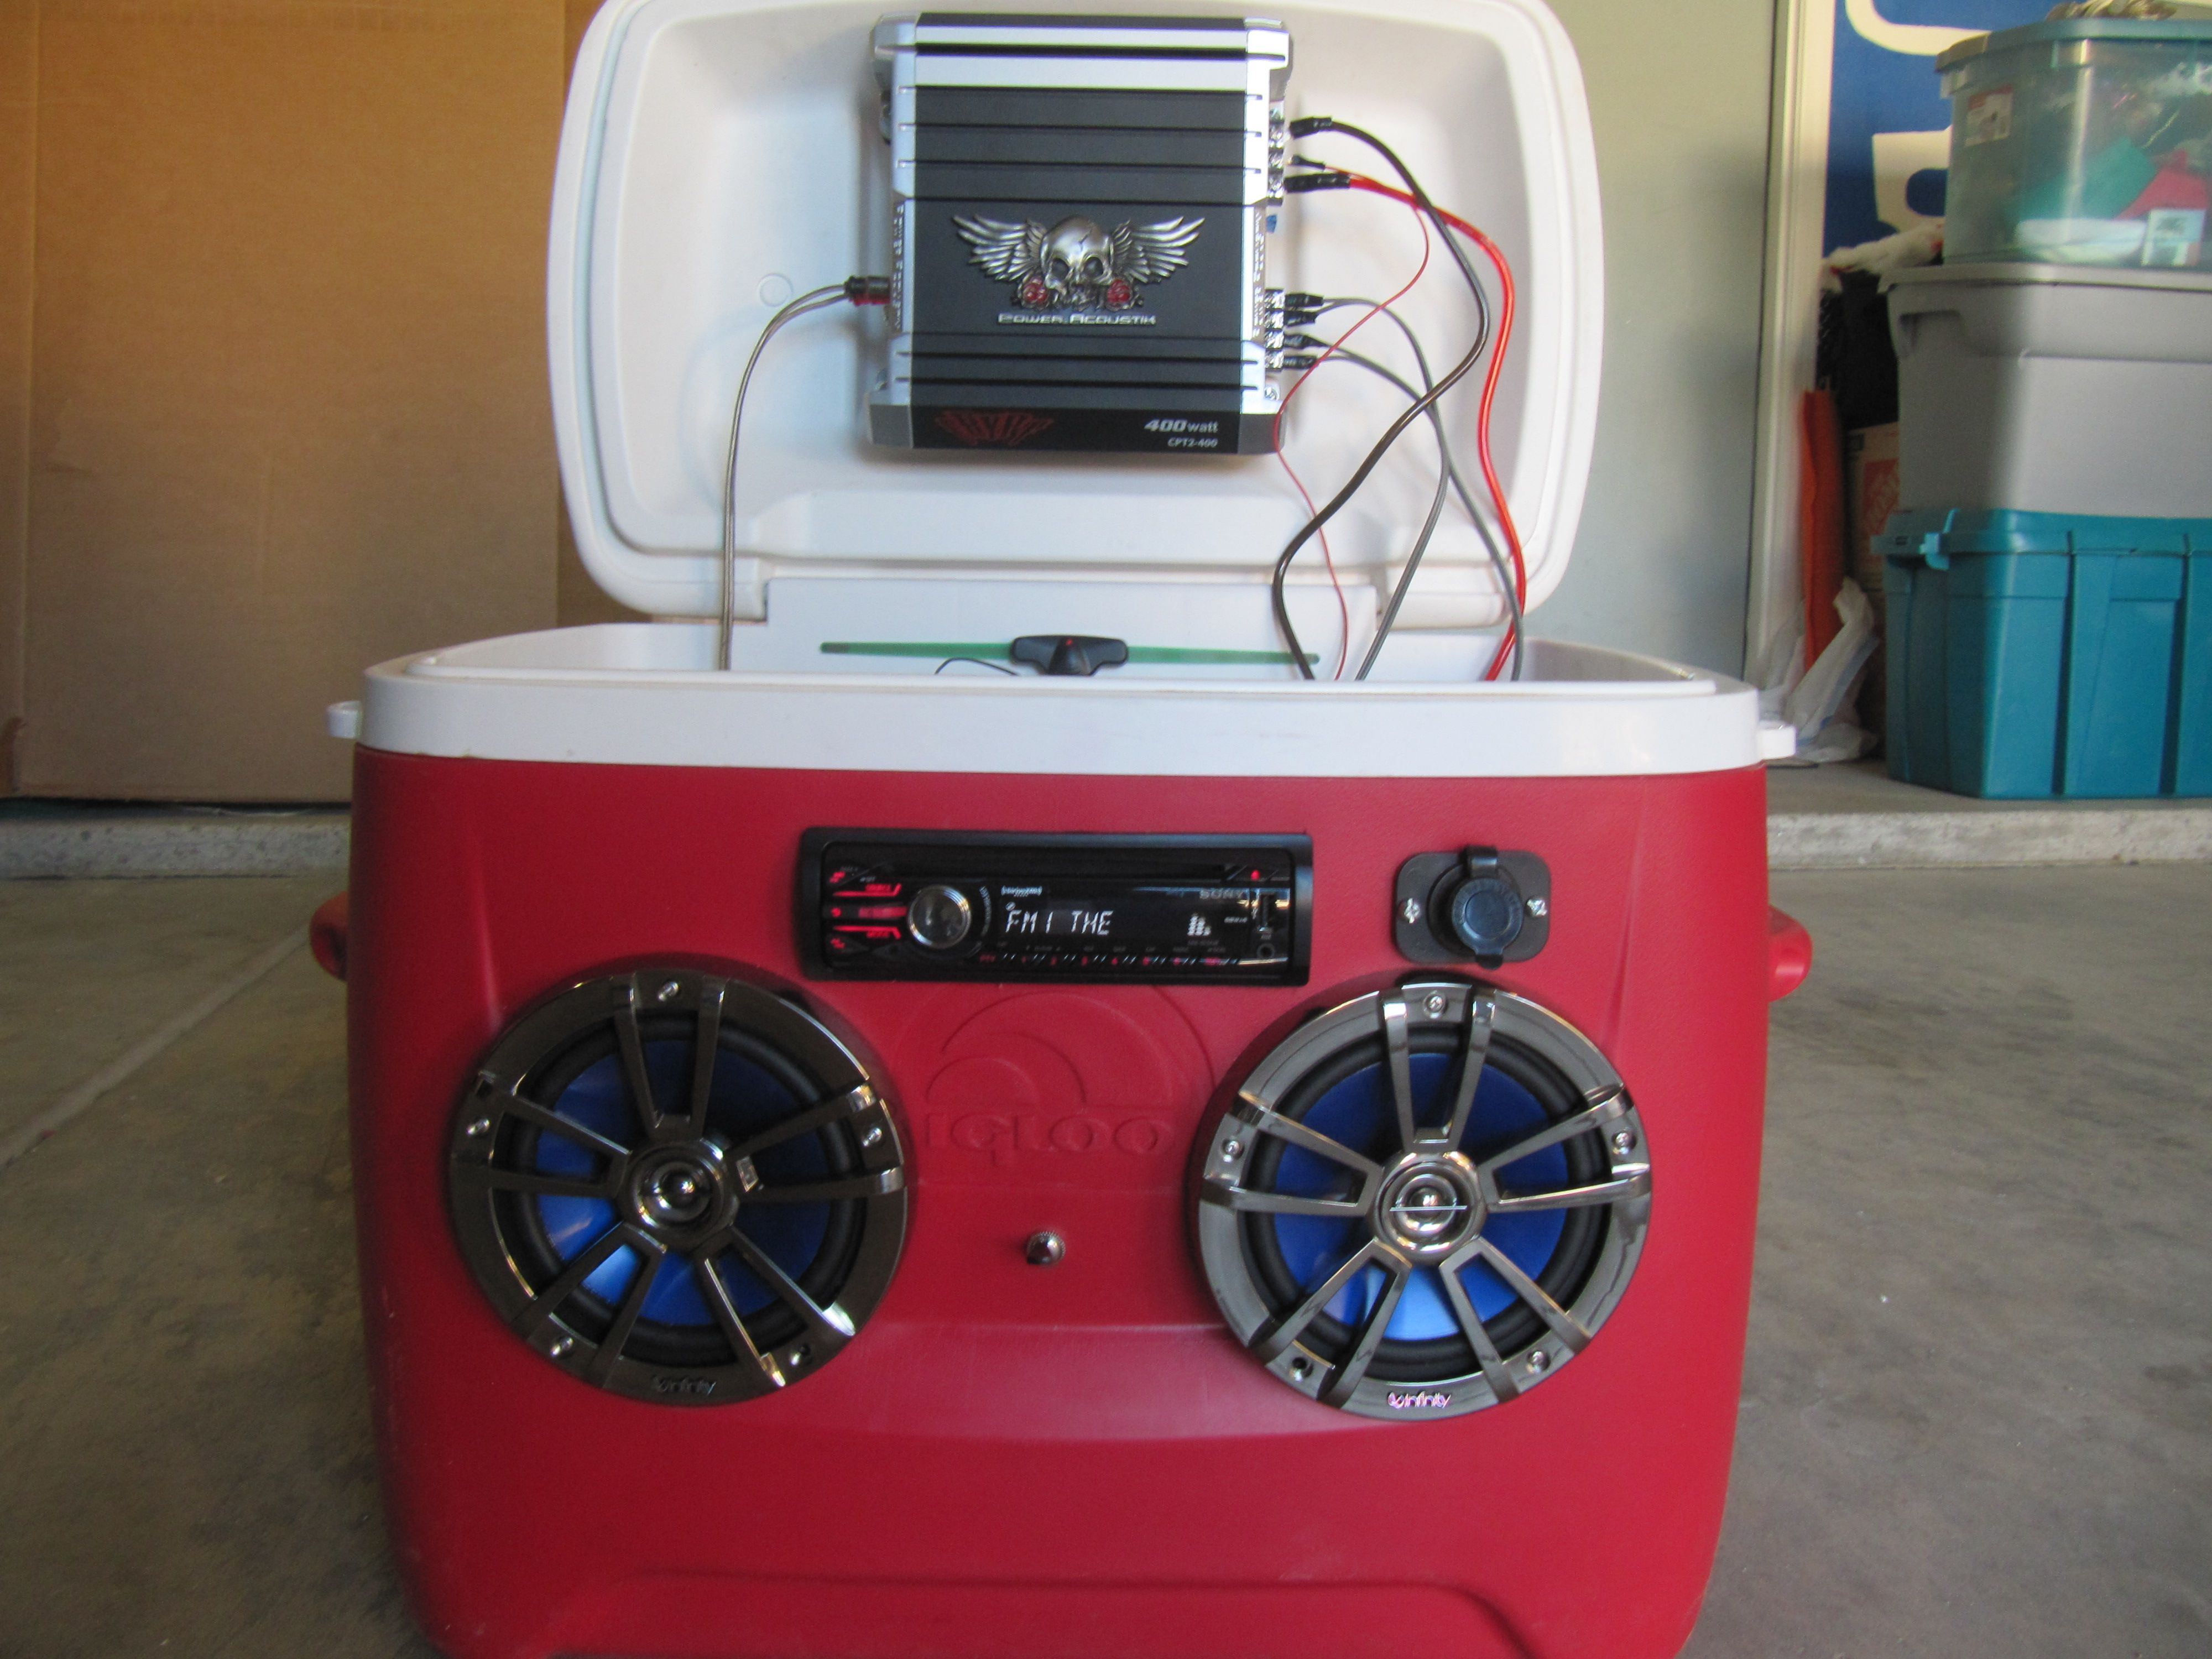 I Turned An Old Cooler Into A Portable Stereo Cooler